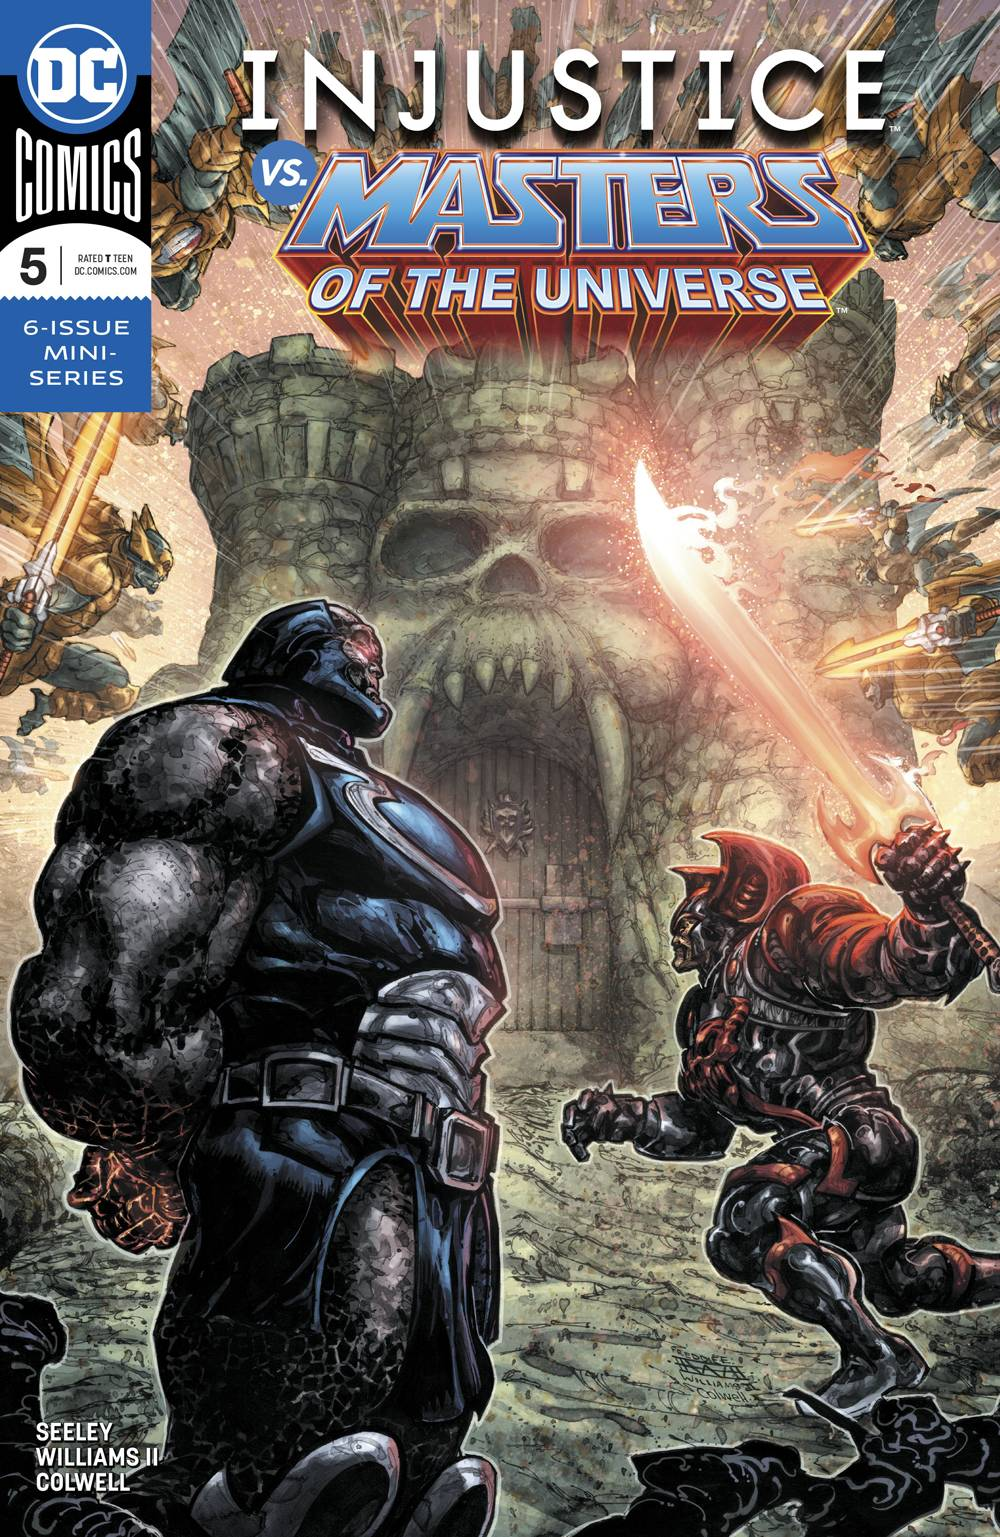 INJUSTICE VS THE MASTERS OF THE UNIVERSE 5 of 6.jpg